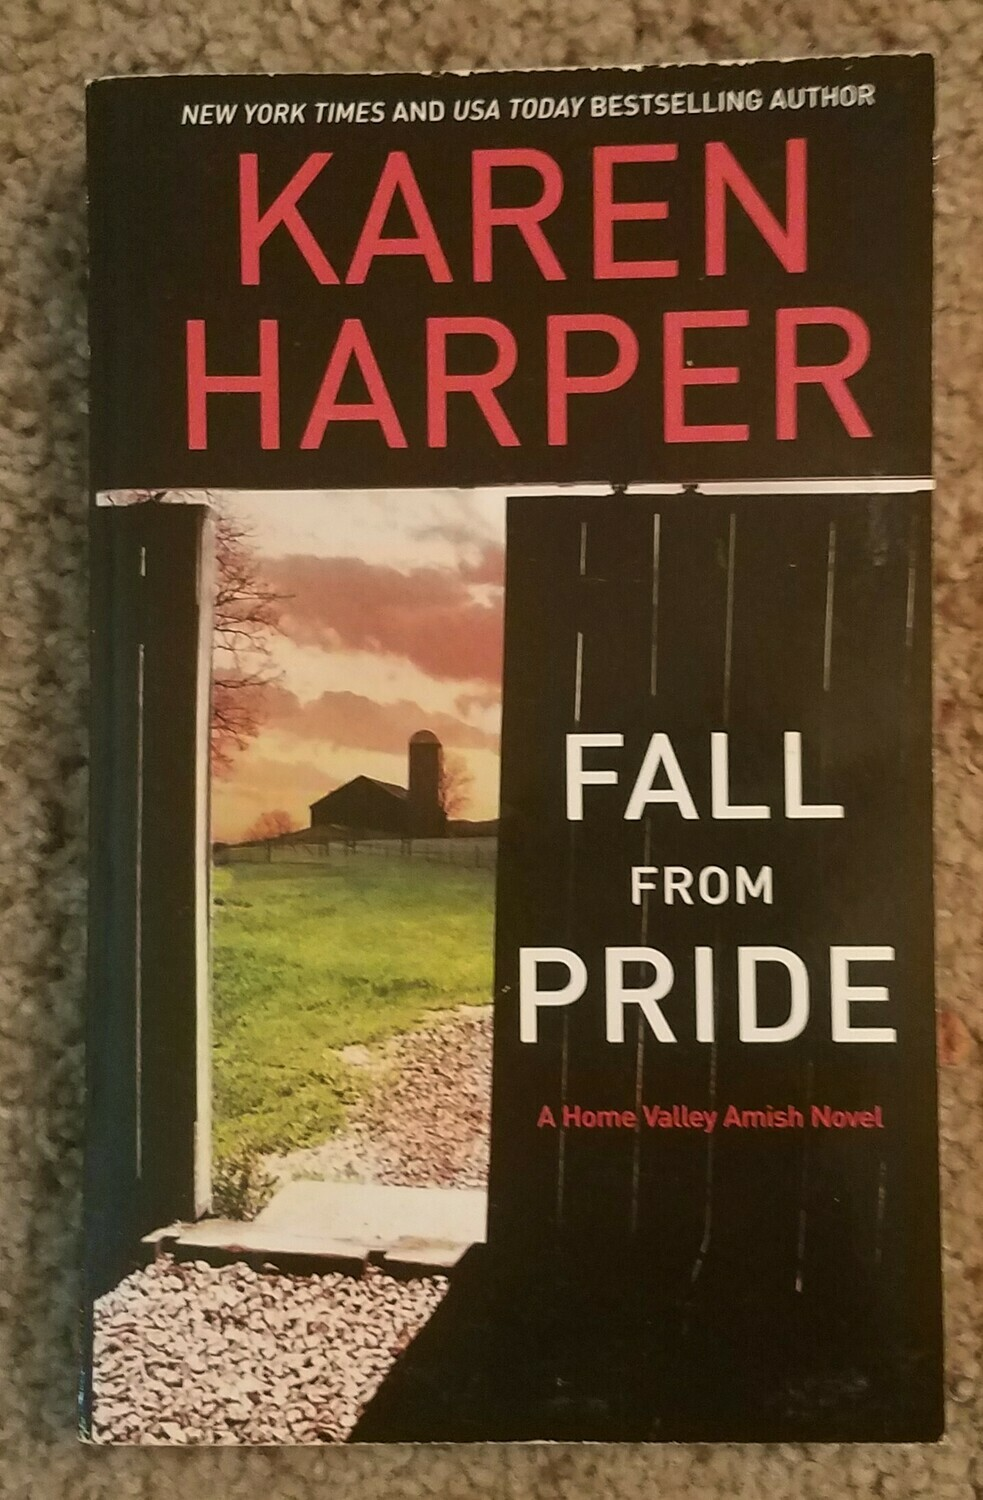 Fall from Pride by Karen Harper